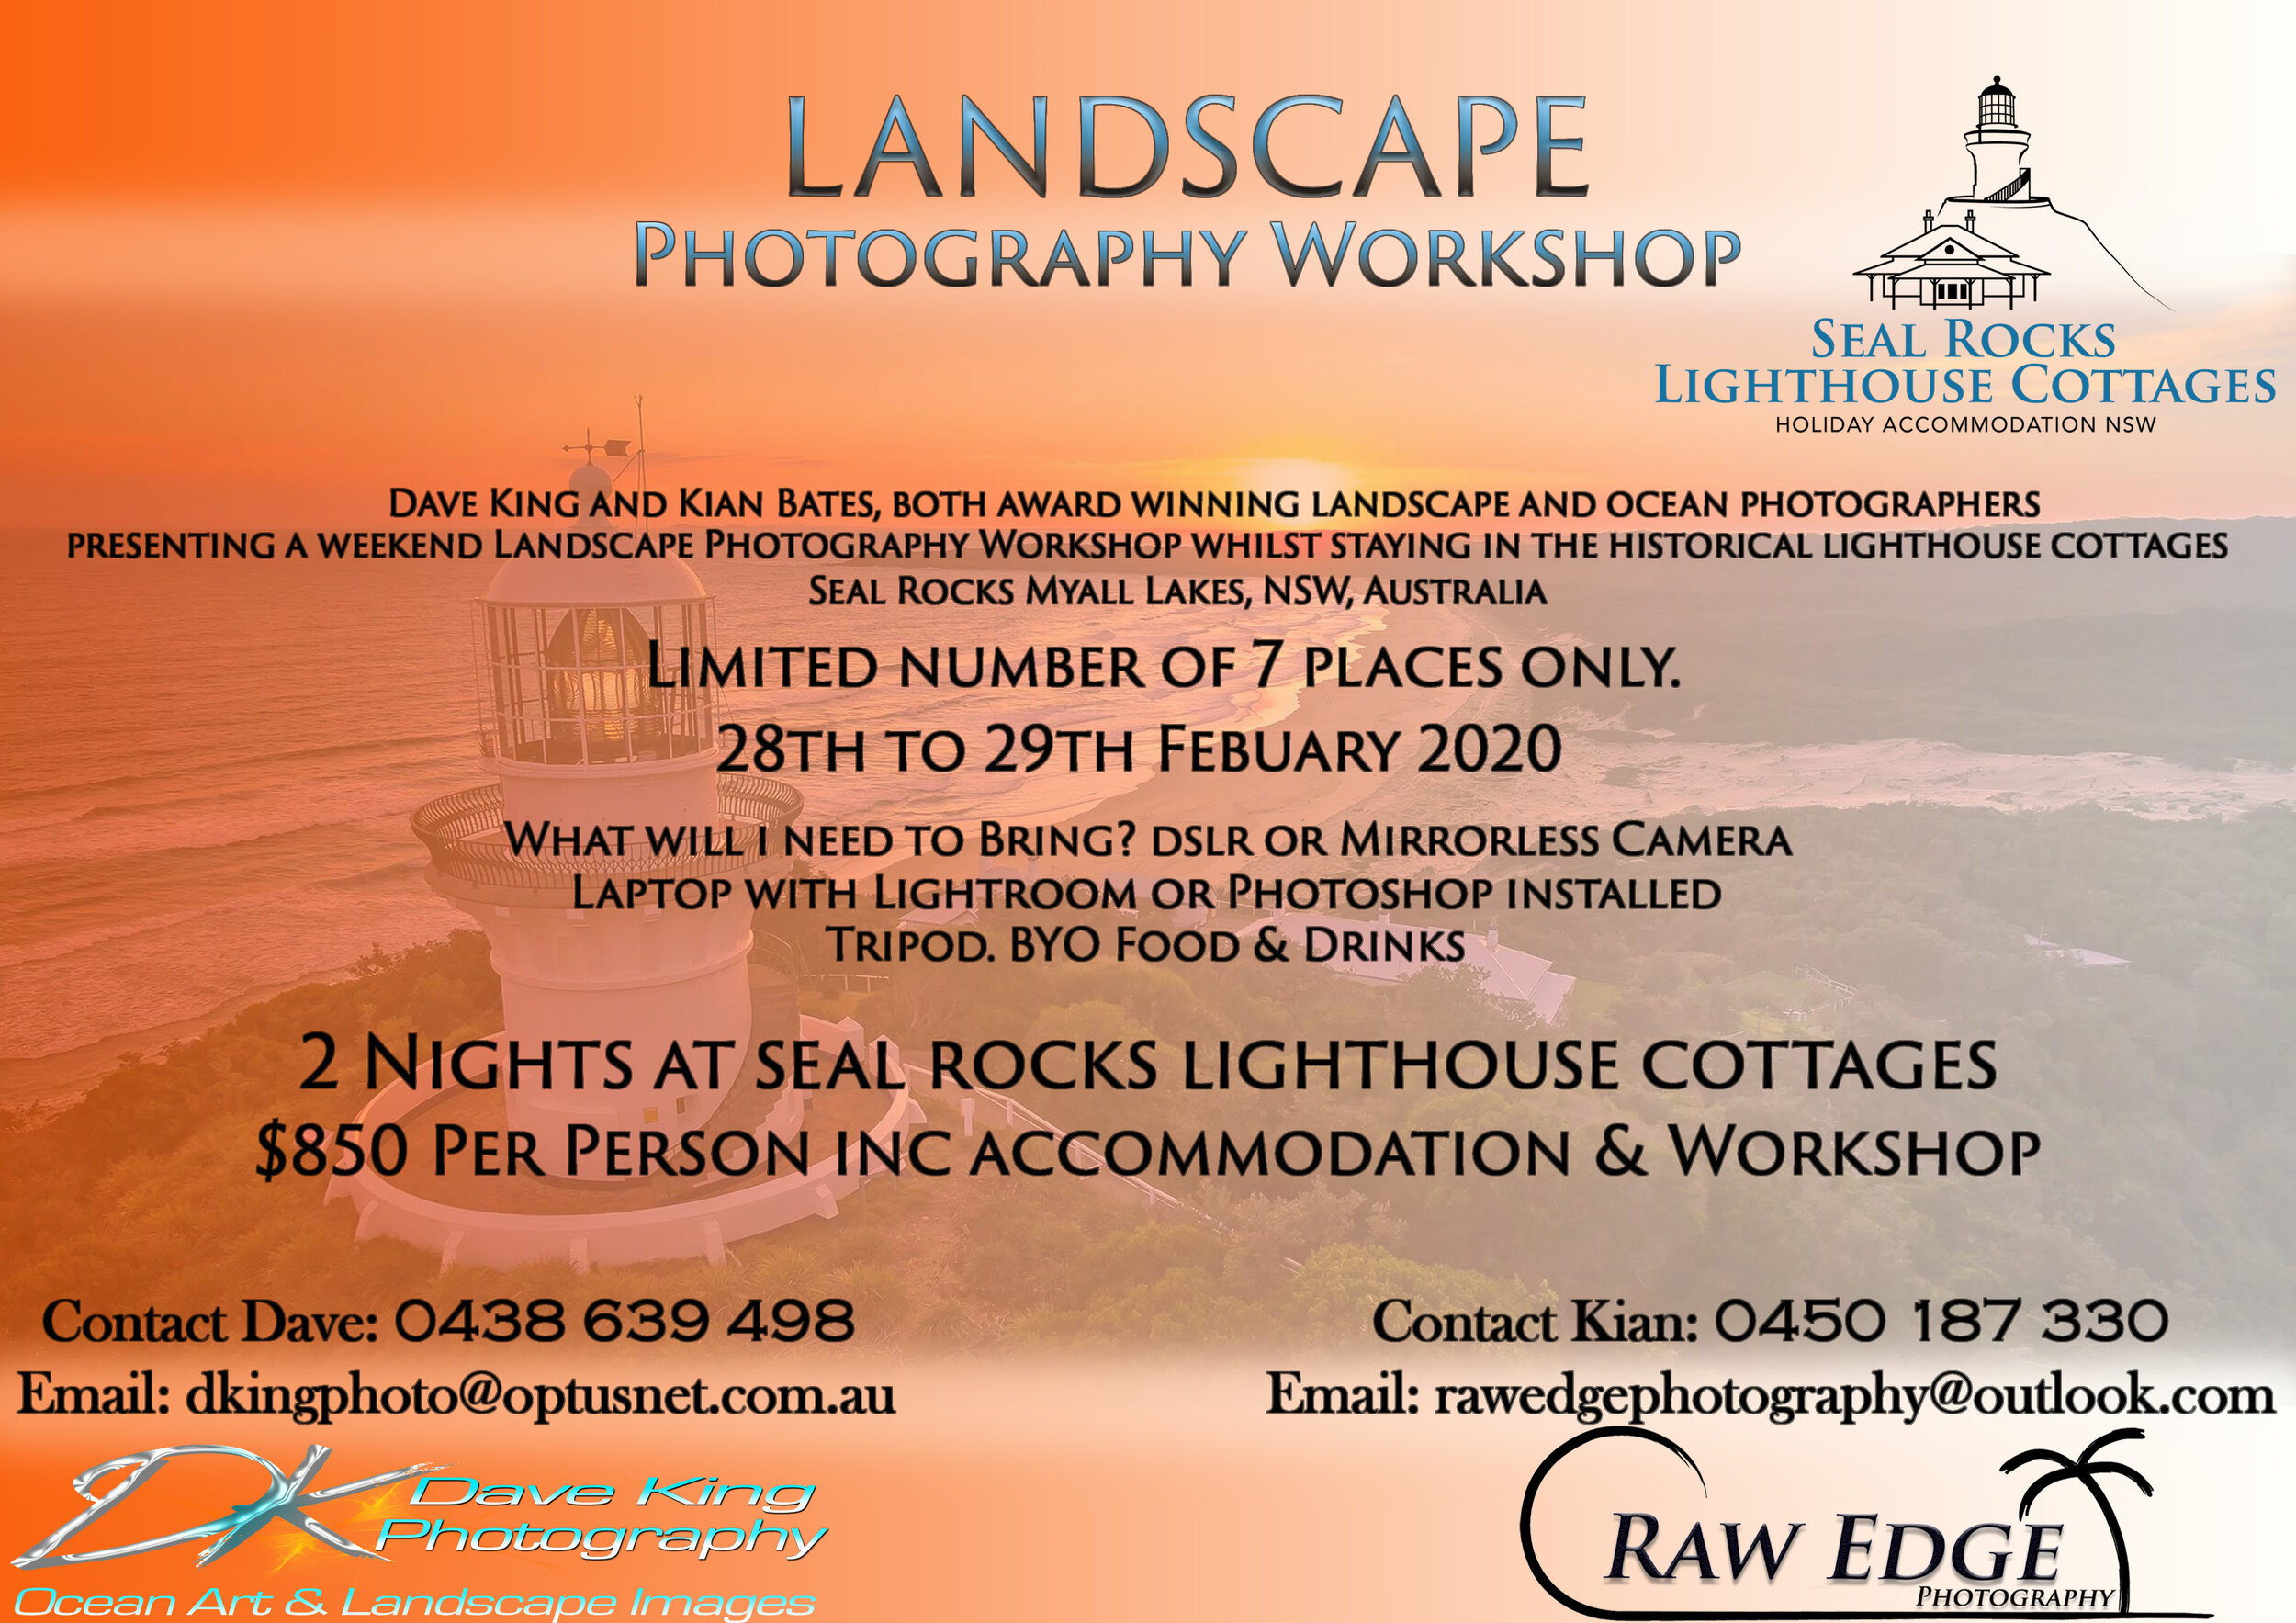 All Exclusive landscape photography workshop at Seal Rocks Lighthouse.  We have 5 spots left  To book we require a $400 deposit, this allocates your own private room at Seal Rocks Lighthouse cottages.  Email me for more details.